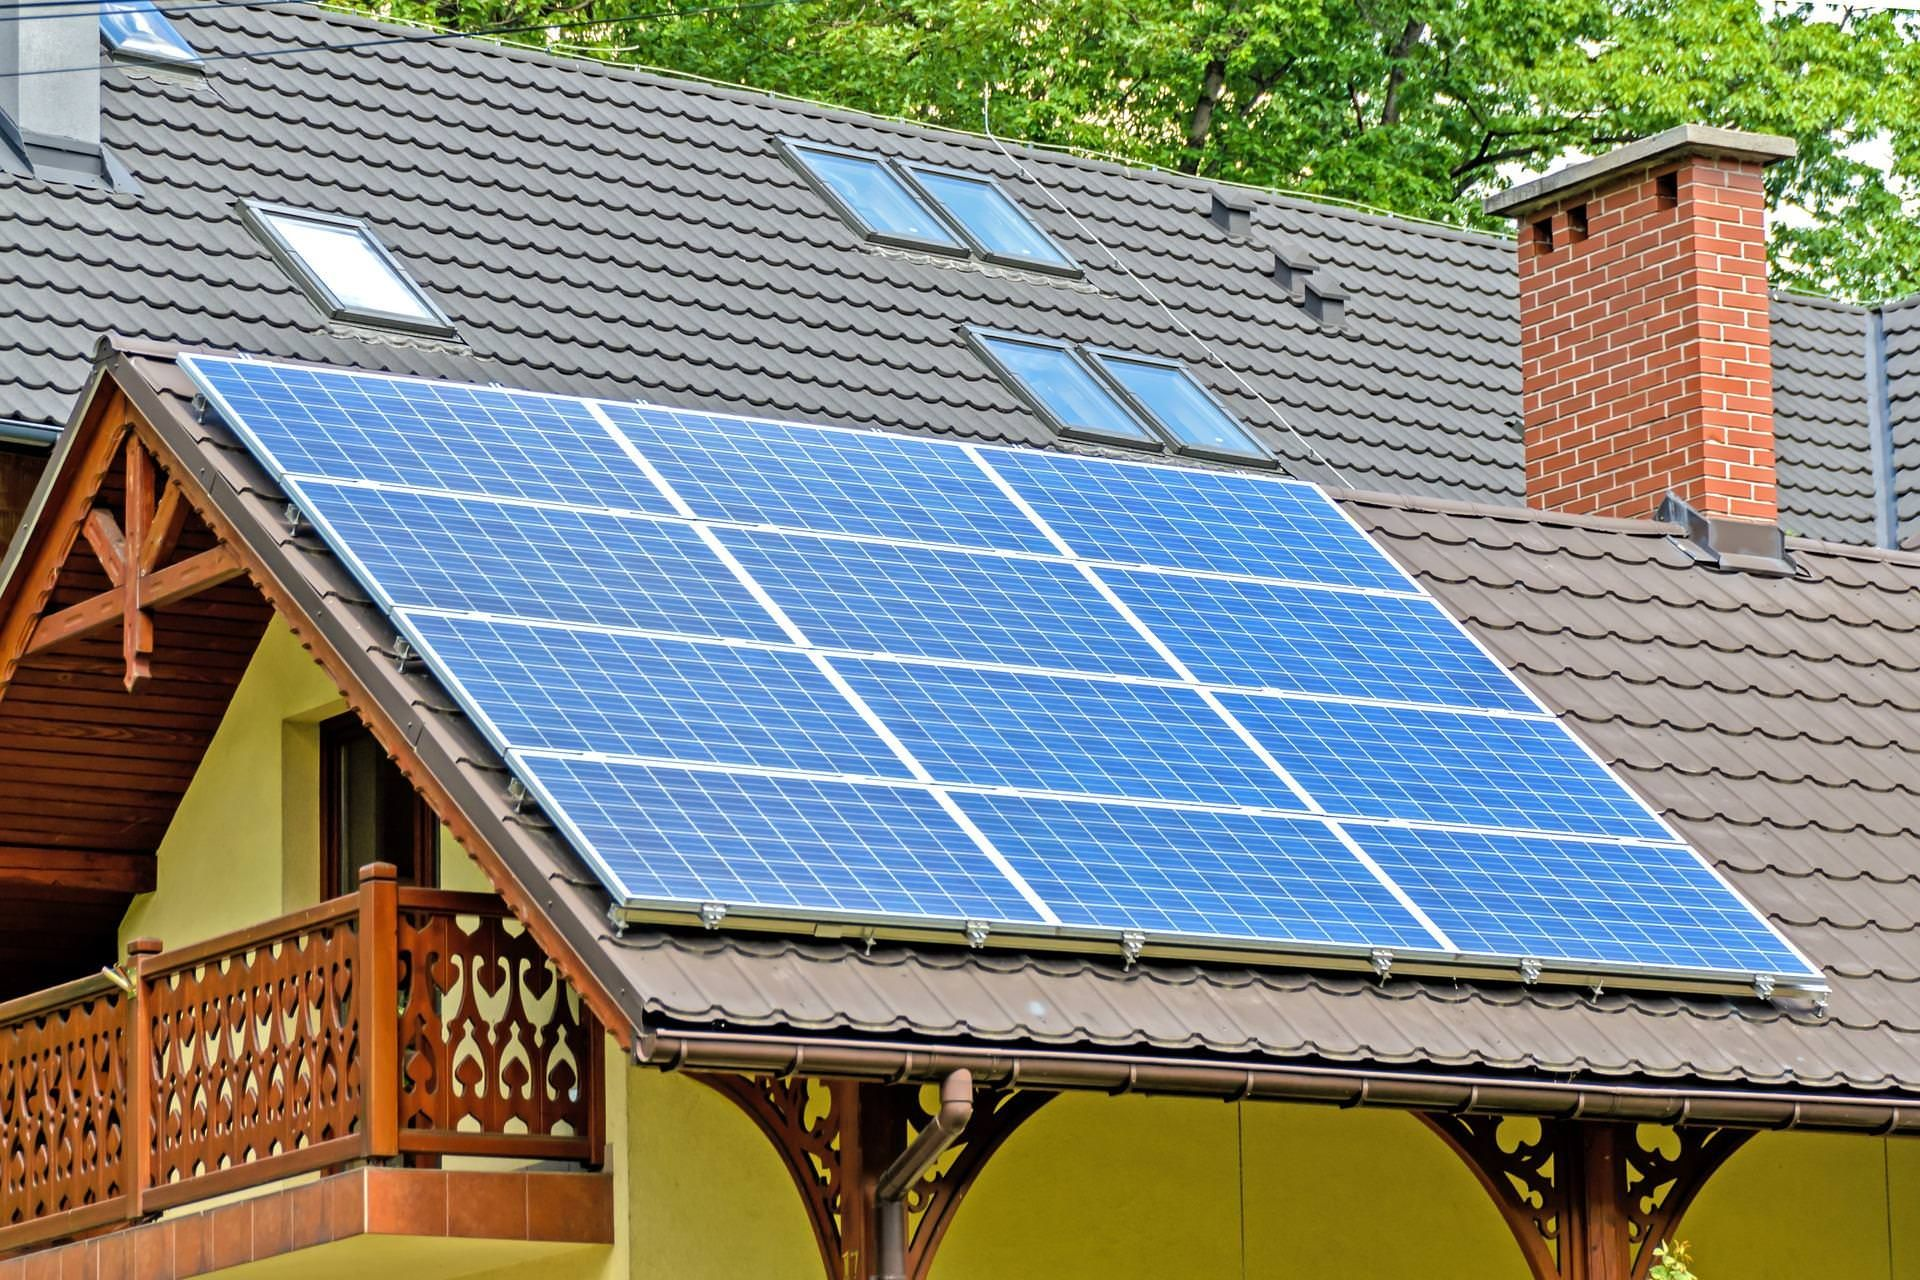 10 Types Of Solar Panels Systems For The Home Small Solar Panels Solar Panels Solar Panels For Home